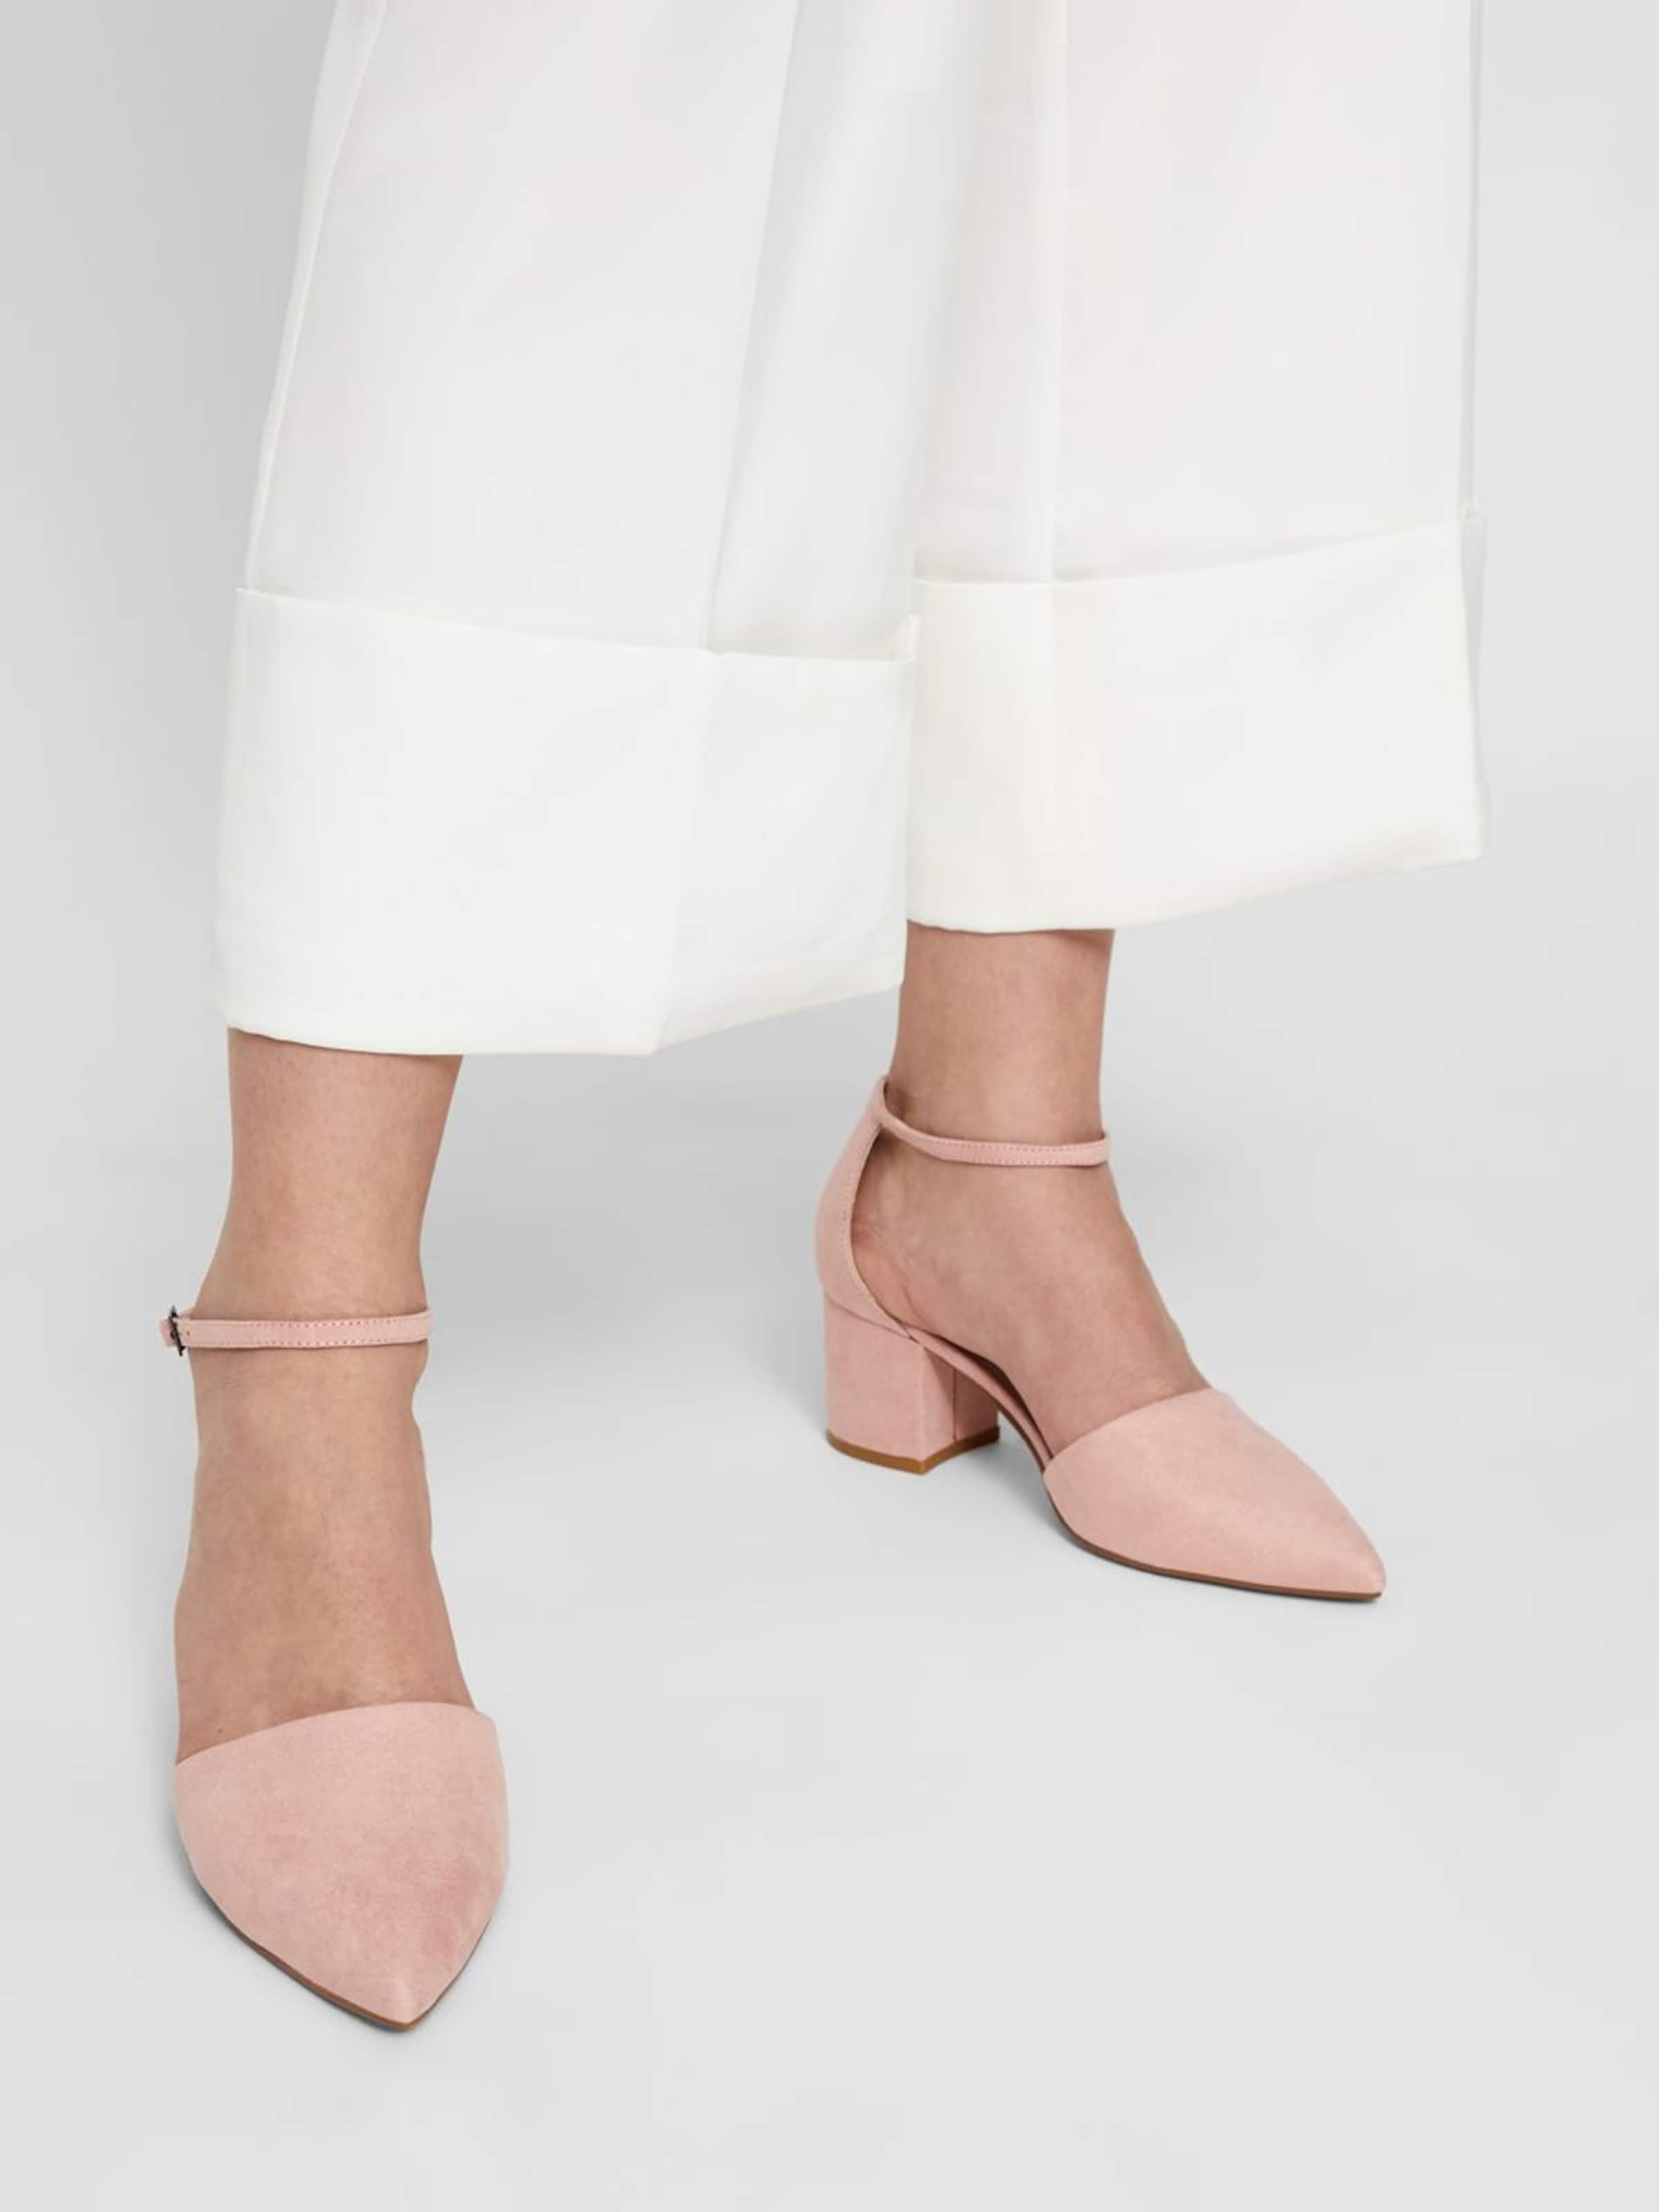 D'orsay' Pumps In 'divived Bianco Altrosa m0n8Nw